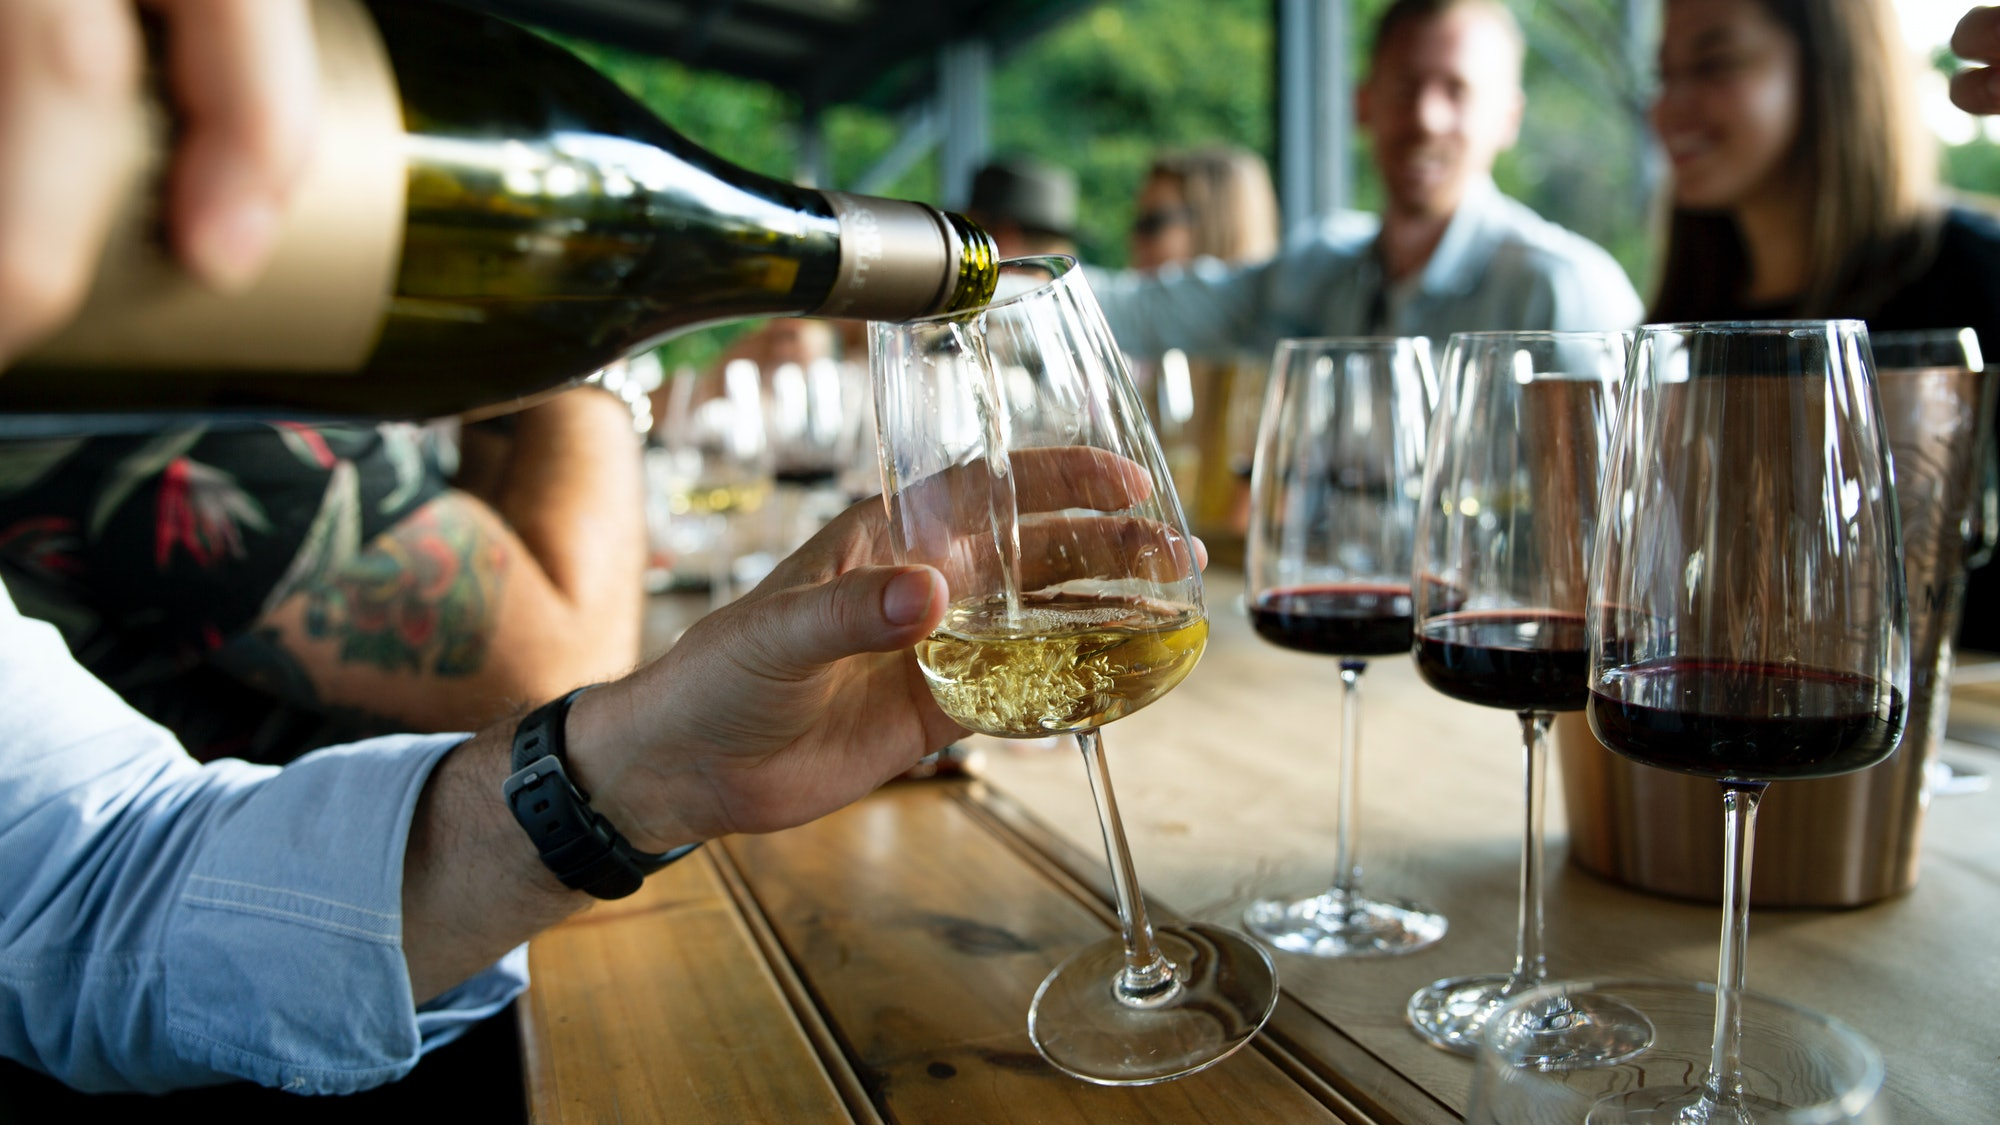 The second-cheapest wine on the menu can be the first-biggest rip off.